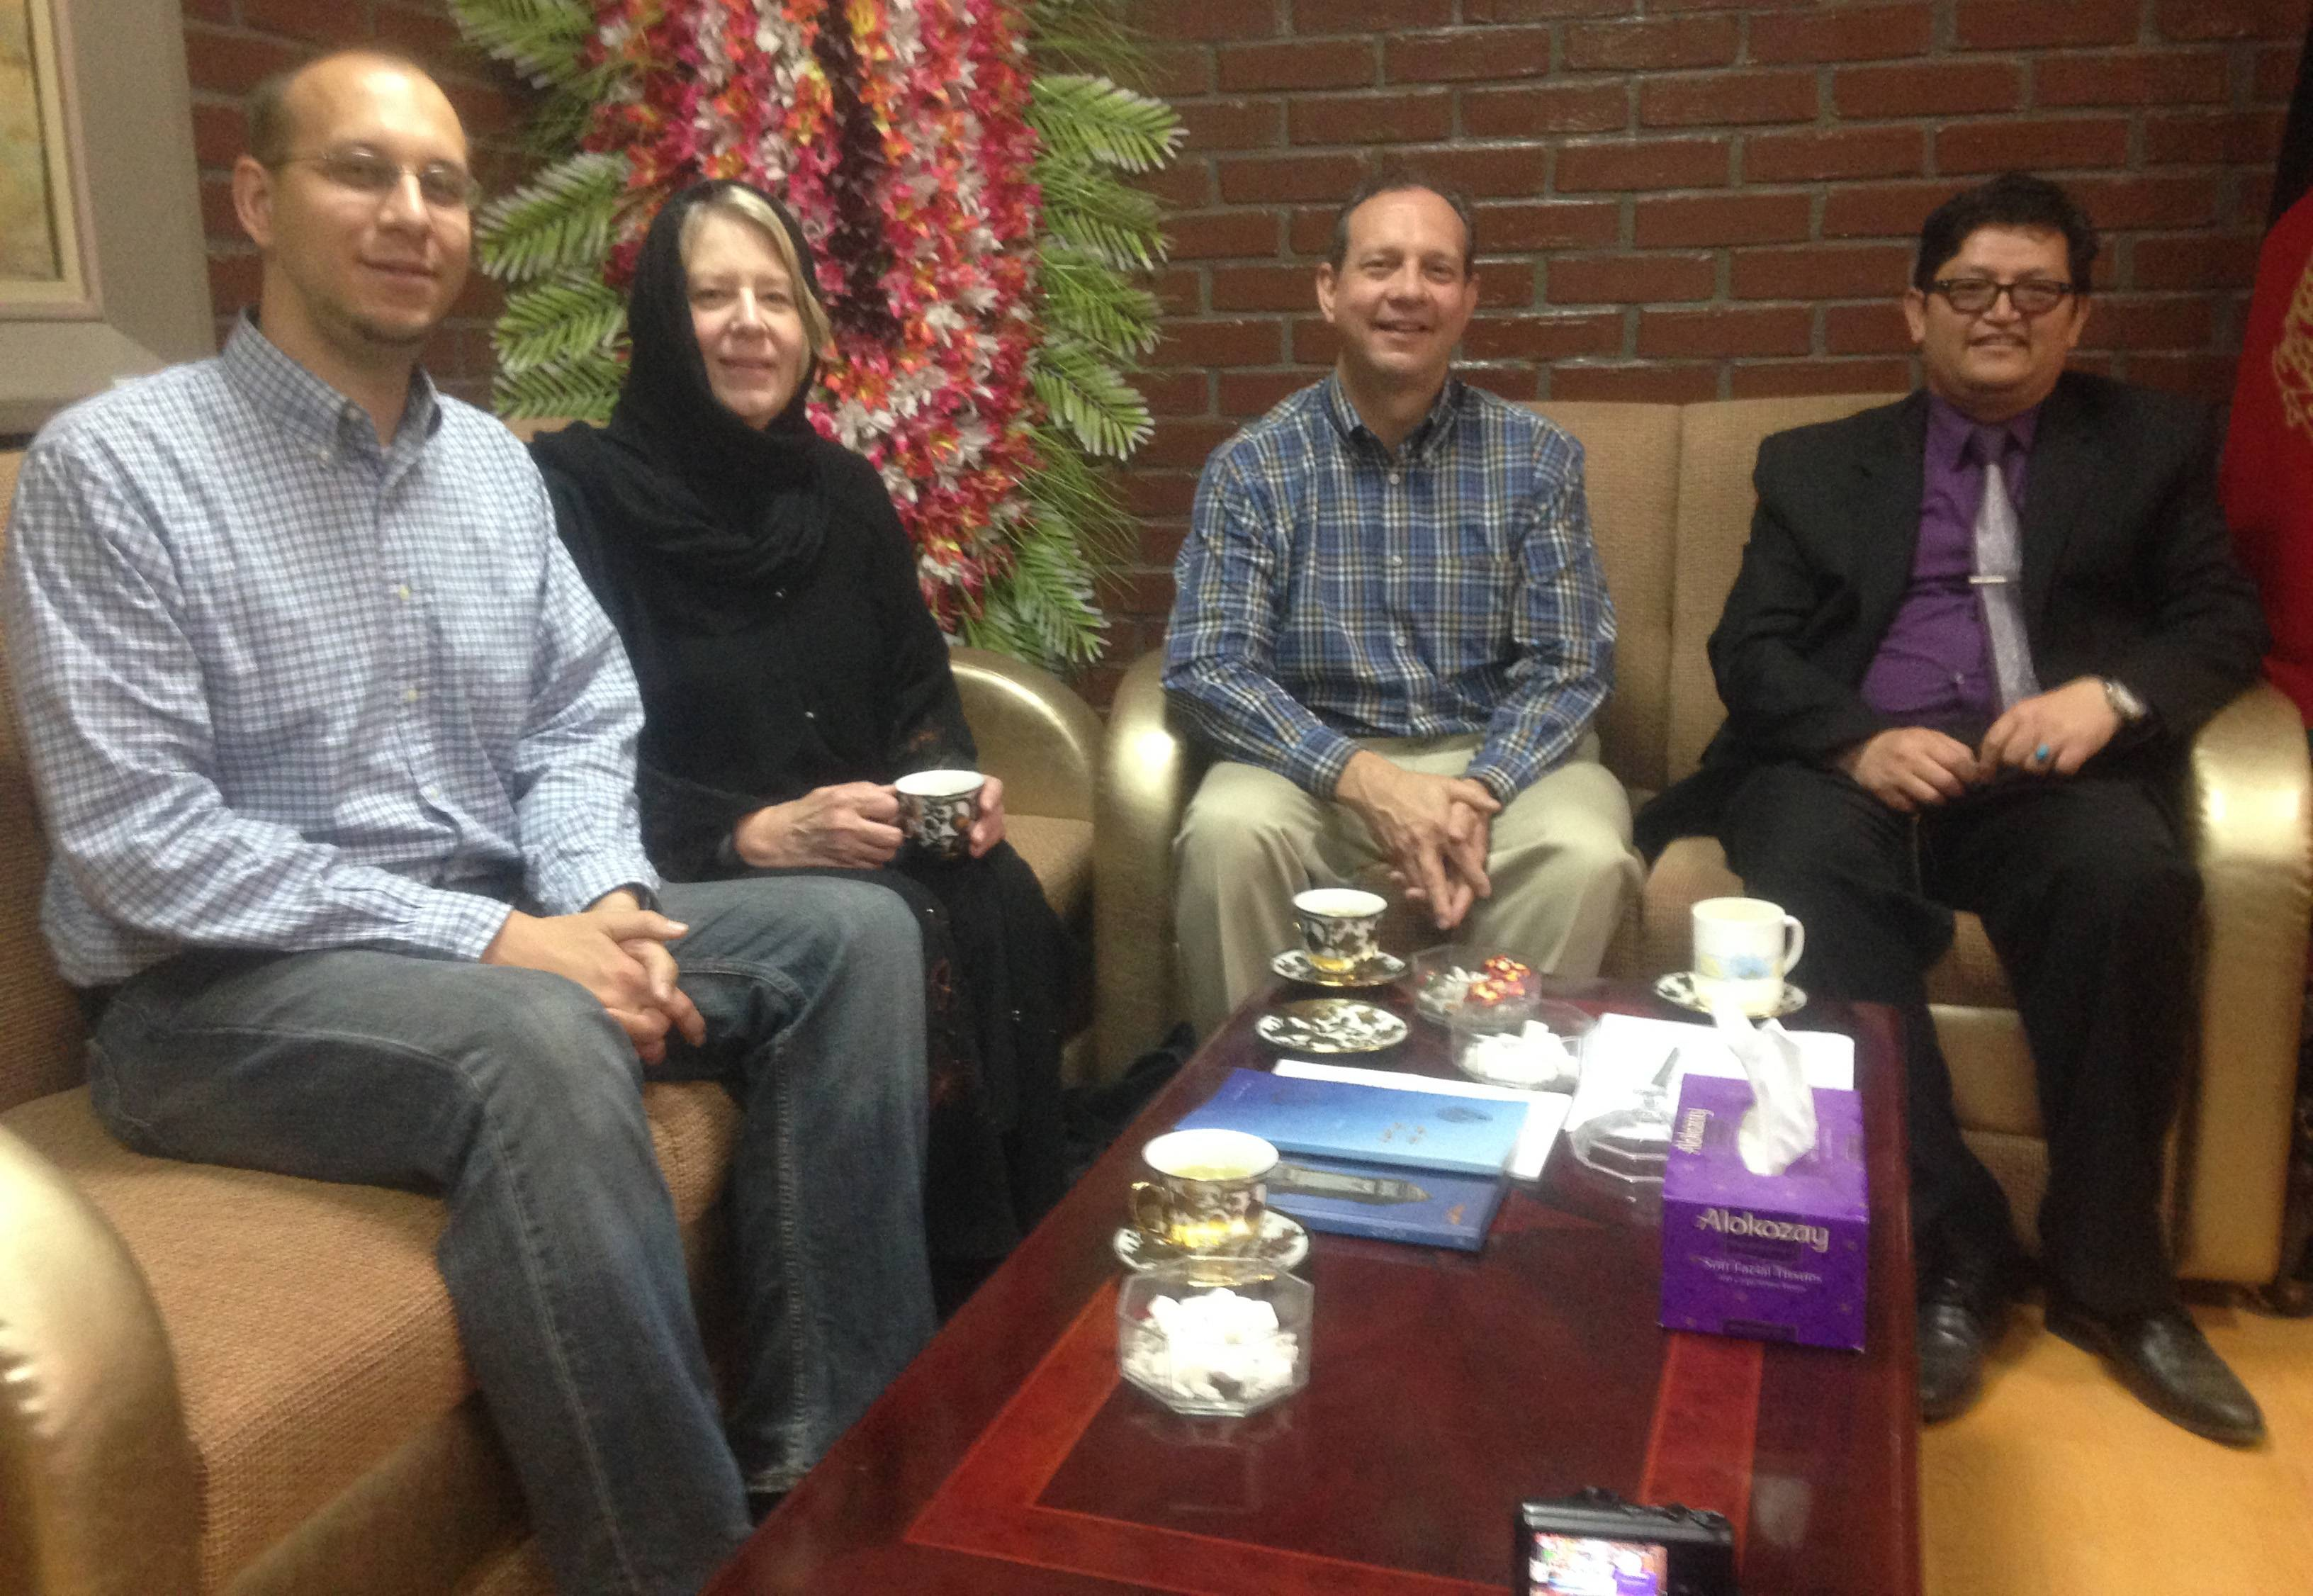 This photo taken on April 22 shows, from left, slain Palatine resident John Gabel, his mother, Betty, and his father, Gary Gabel, sitting with Mohammad Hadi Hedayati, Kabul University's vice chancellor, in Kabul, Afghanistan.